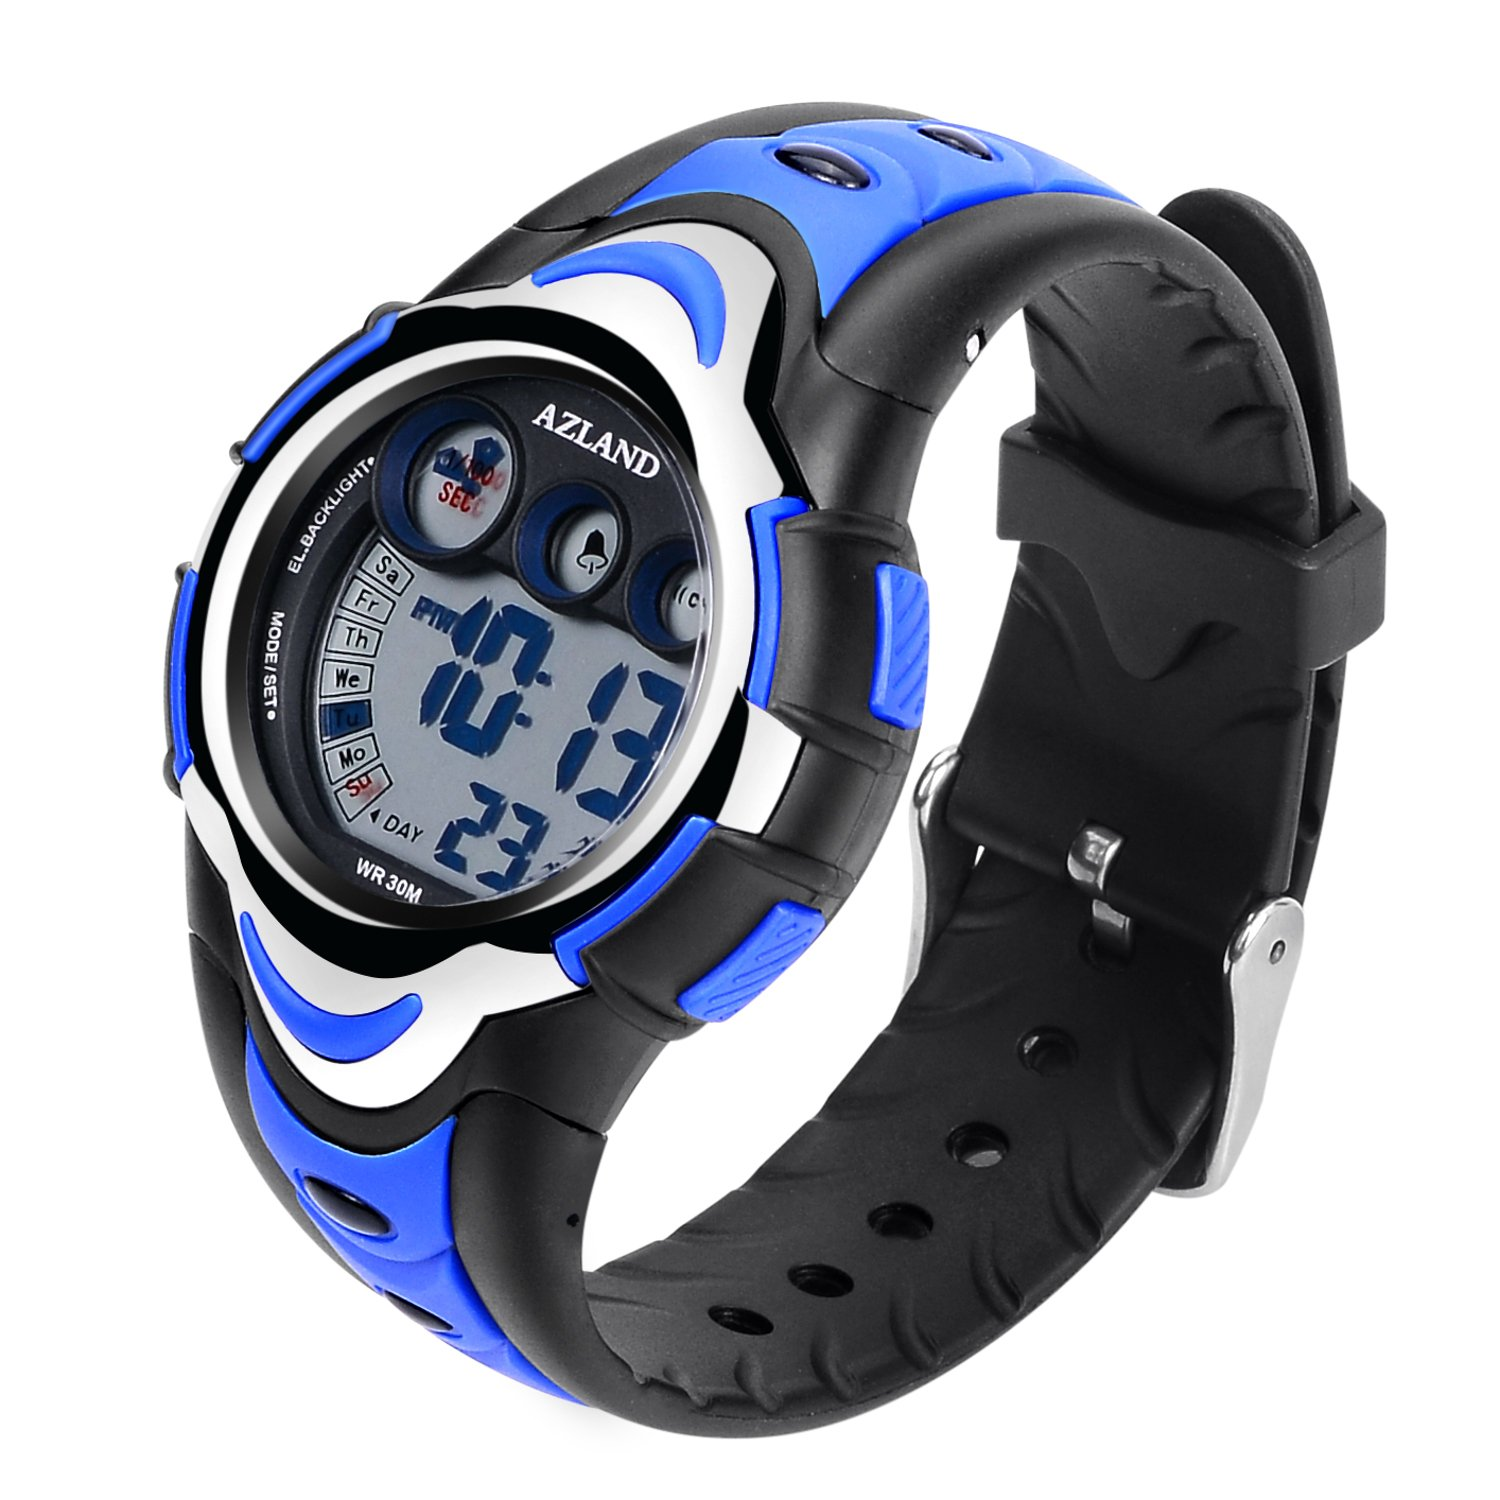 AZLAND Waterproof Swimming Led Digital Sports Watches for Children Kids Girls Boys,Rubber Strap,Blue by AZLAND (Image #5)